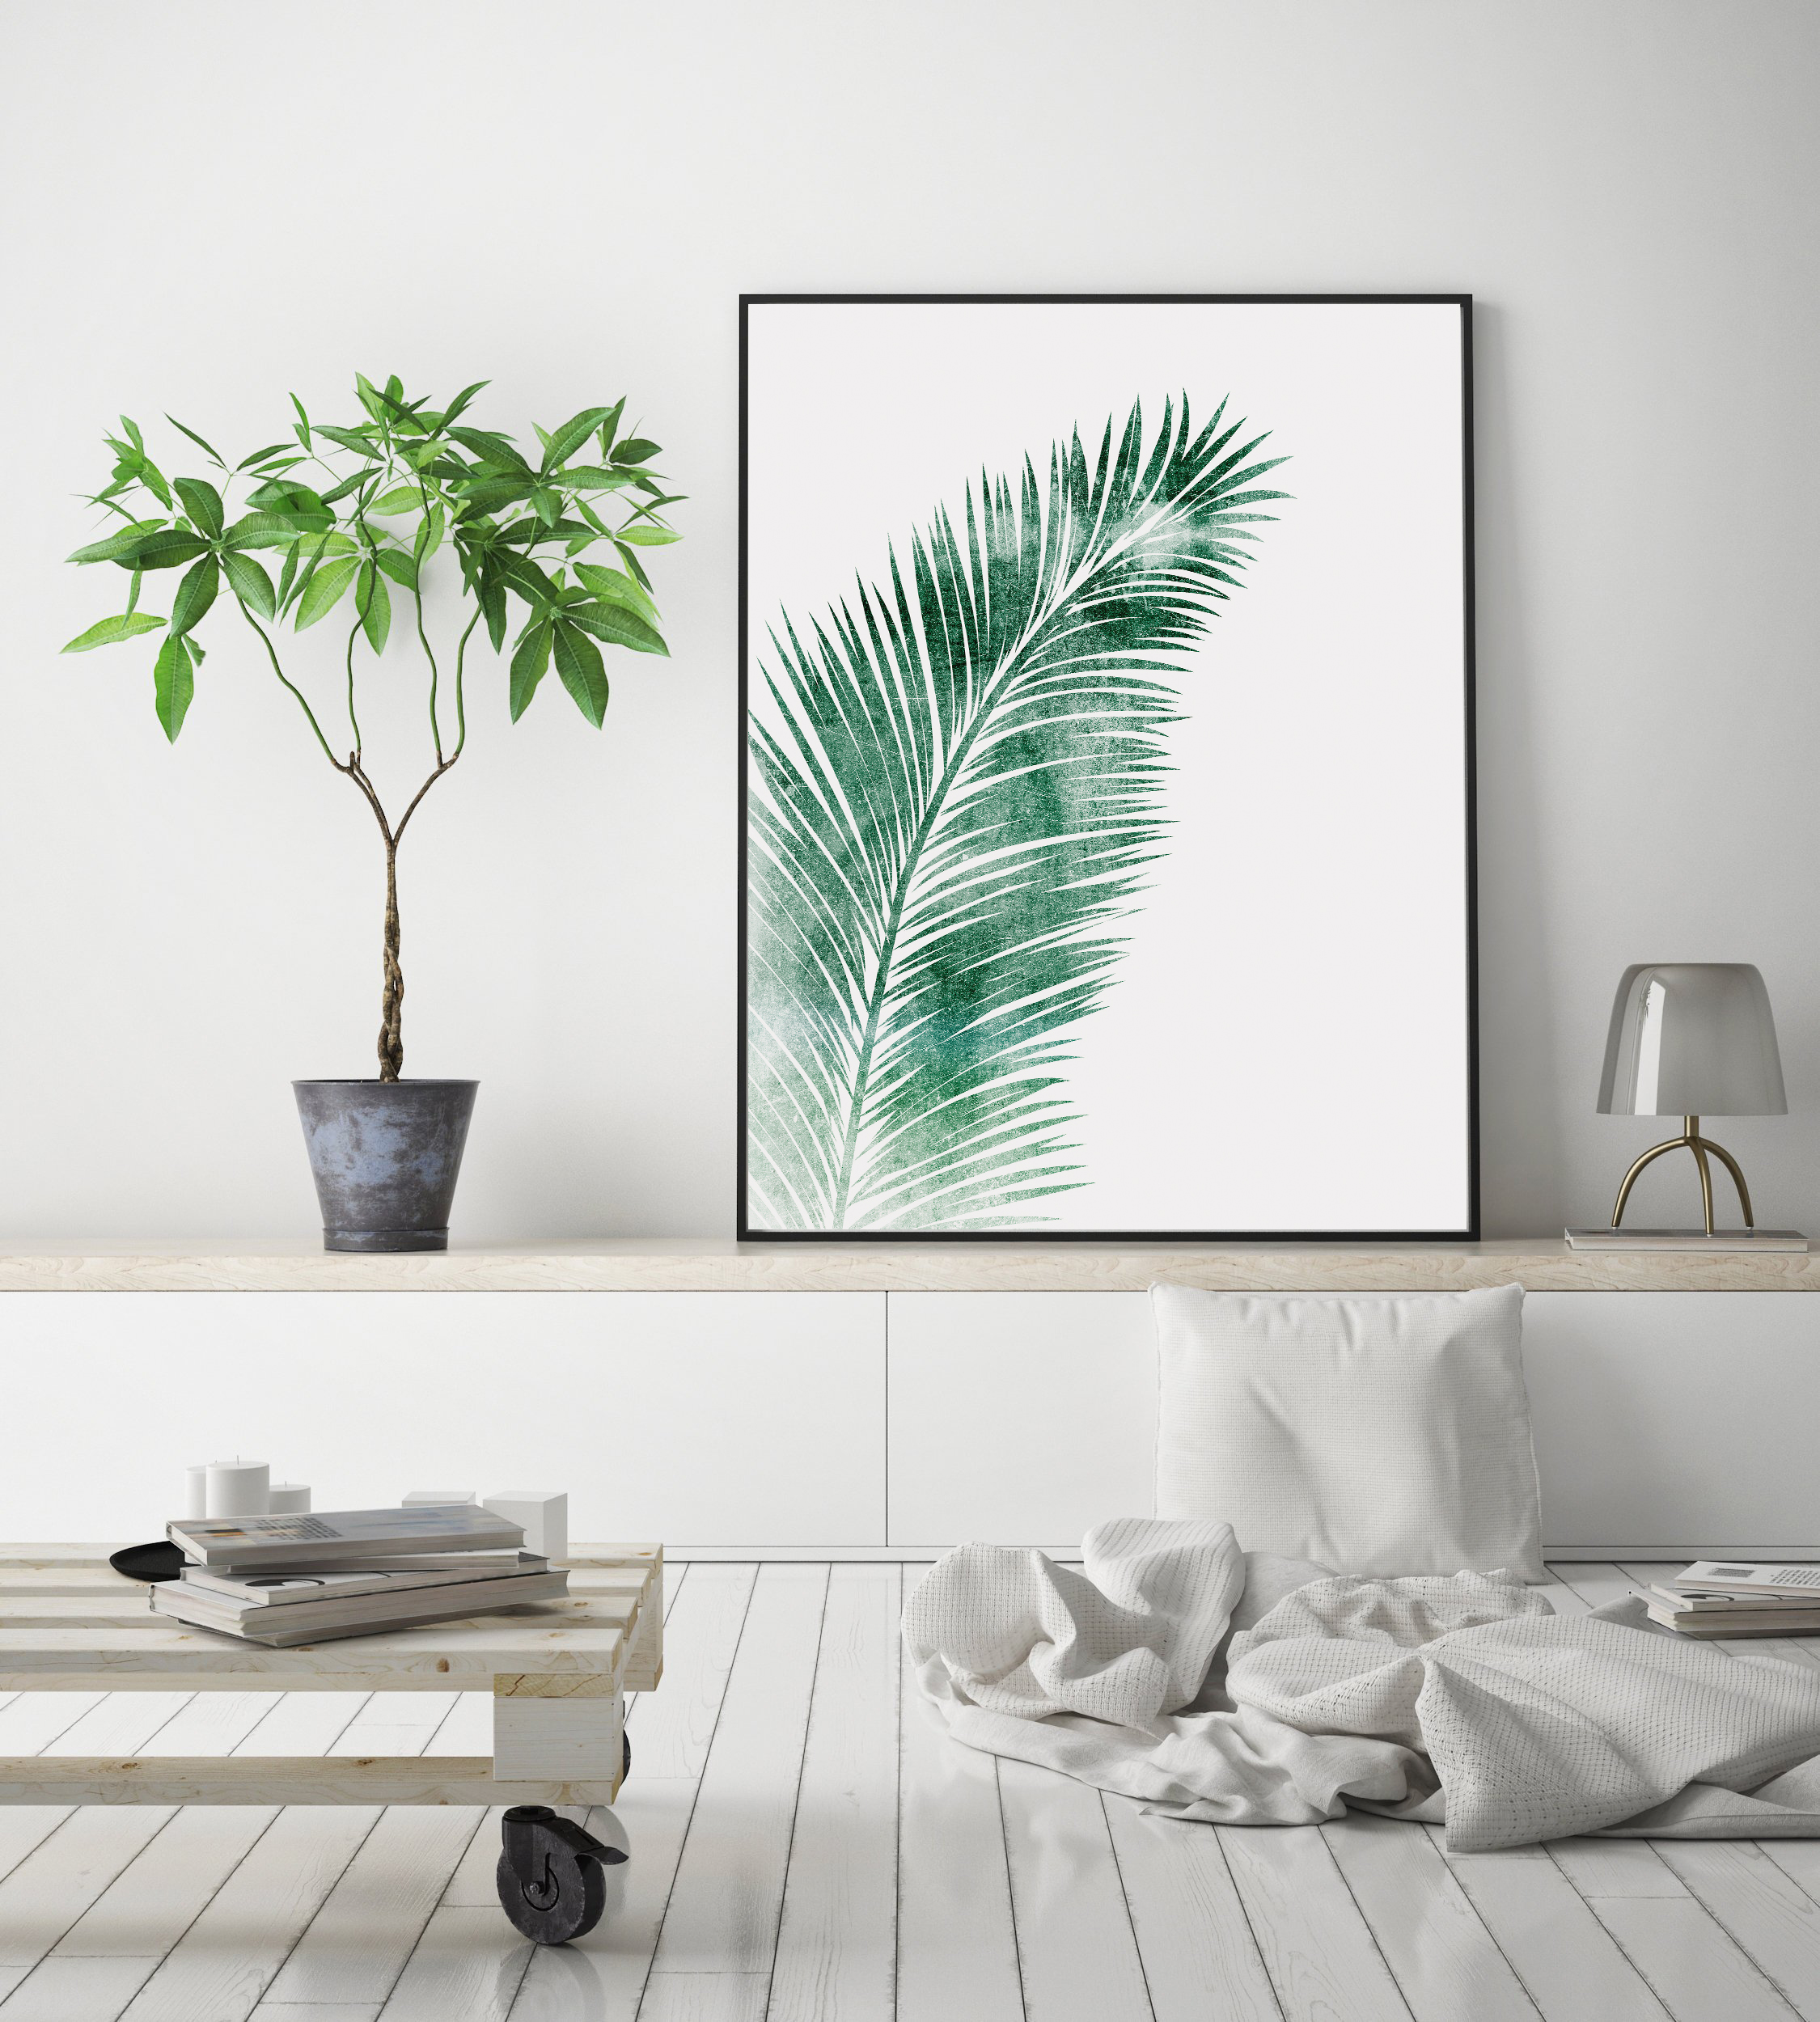 Green Palm Leaf Wall Art, Tropical Leaf for Living Room example image 3